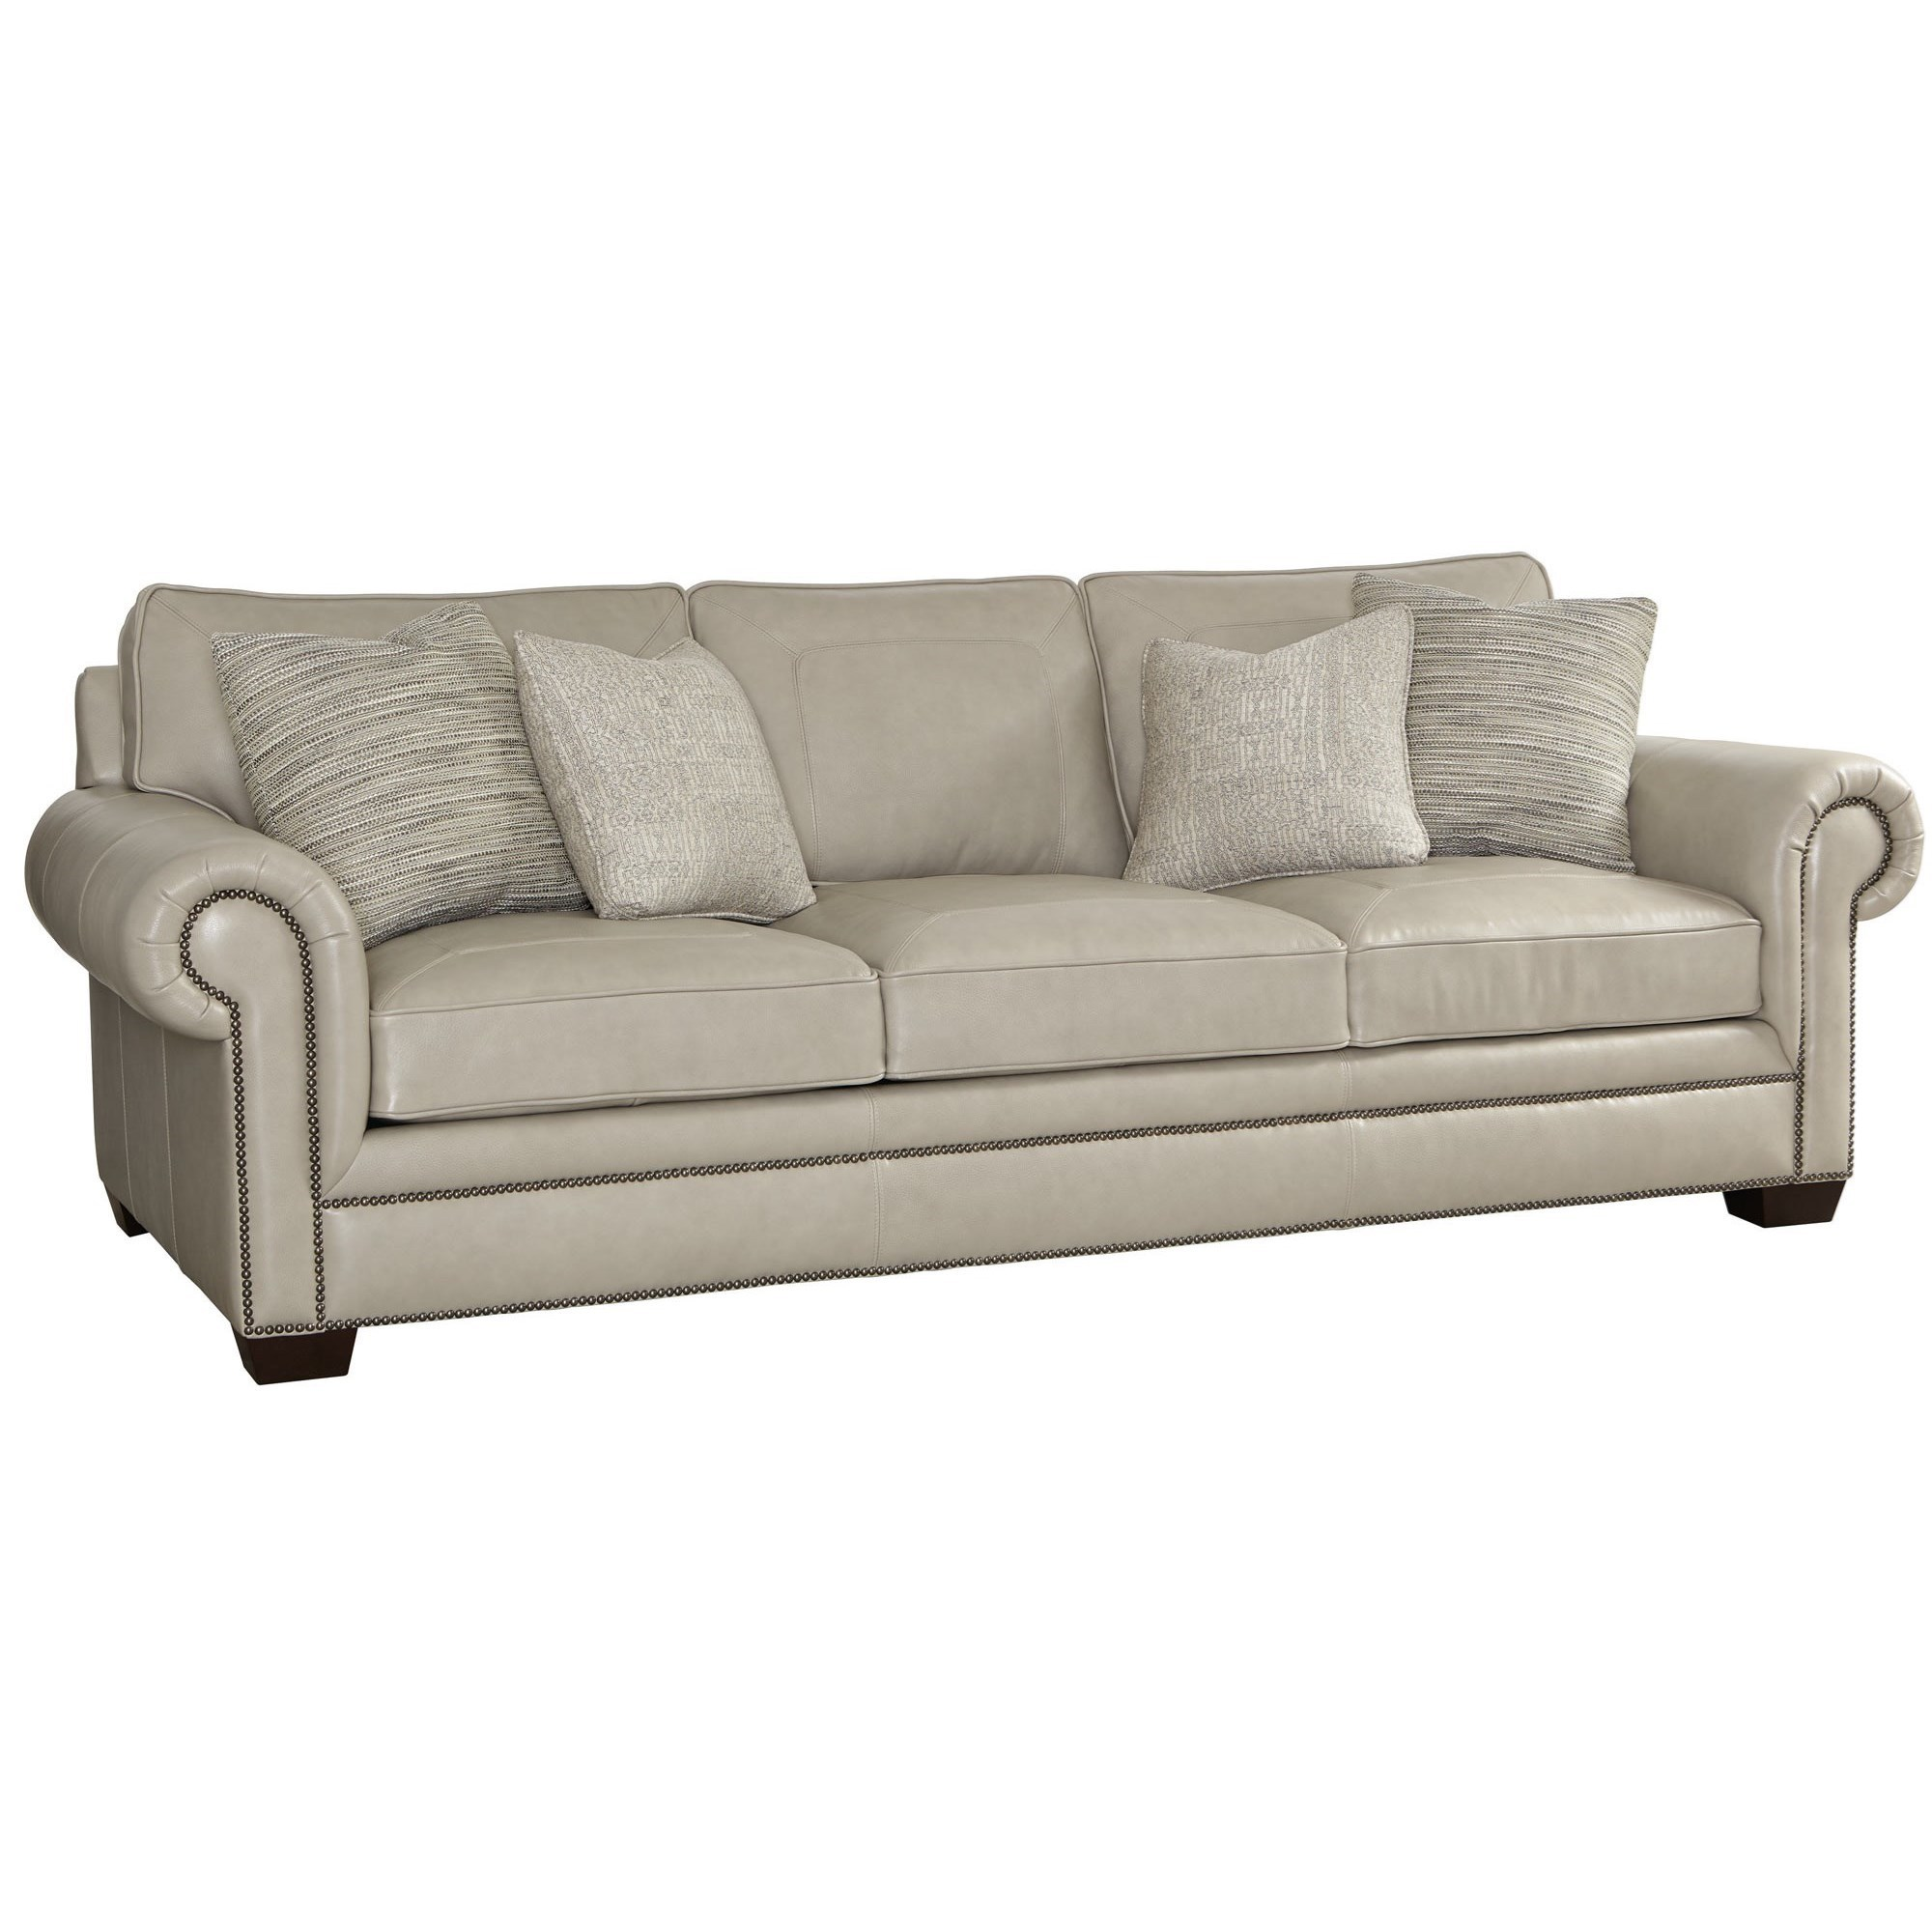 Bernhardt Grandview Traditional Sofa with Nailheads